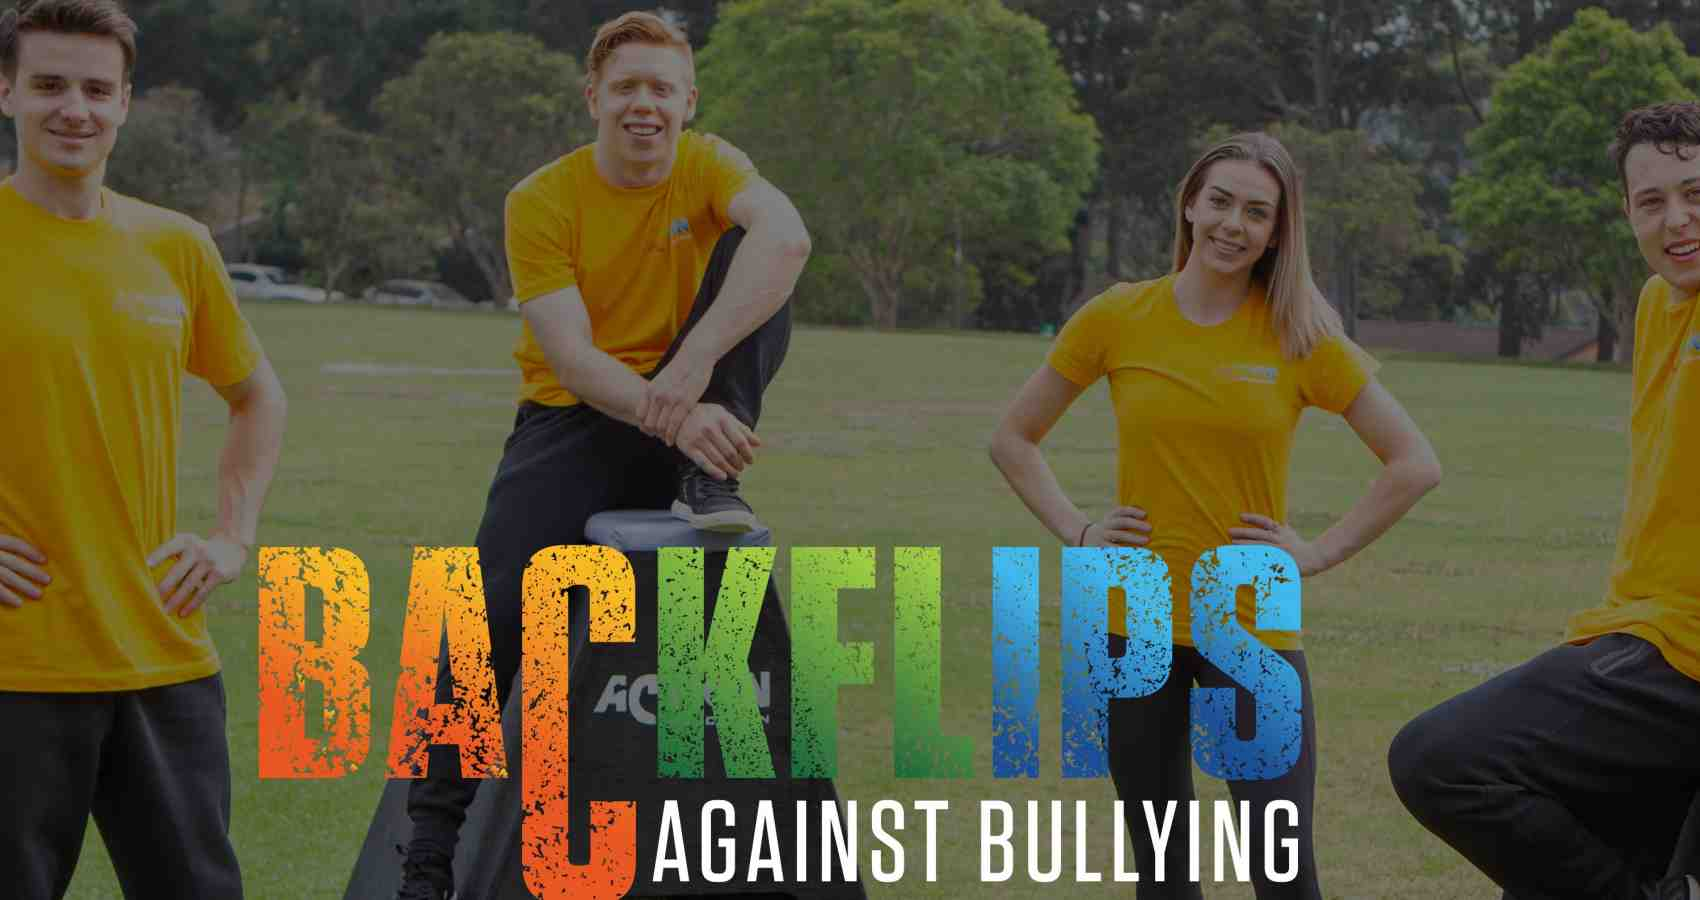 Backflips Against Bullying